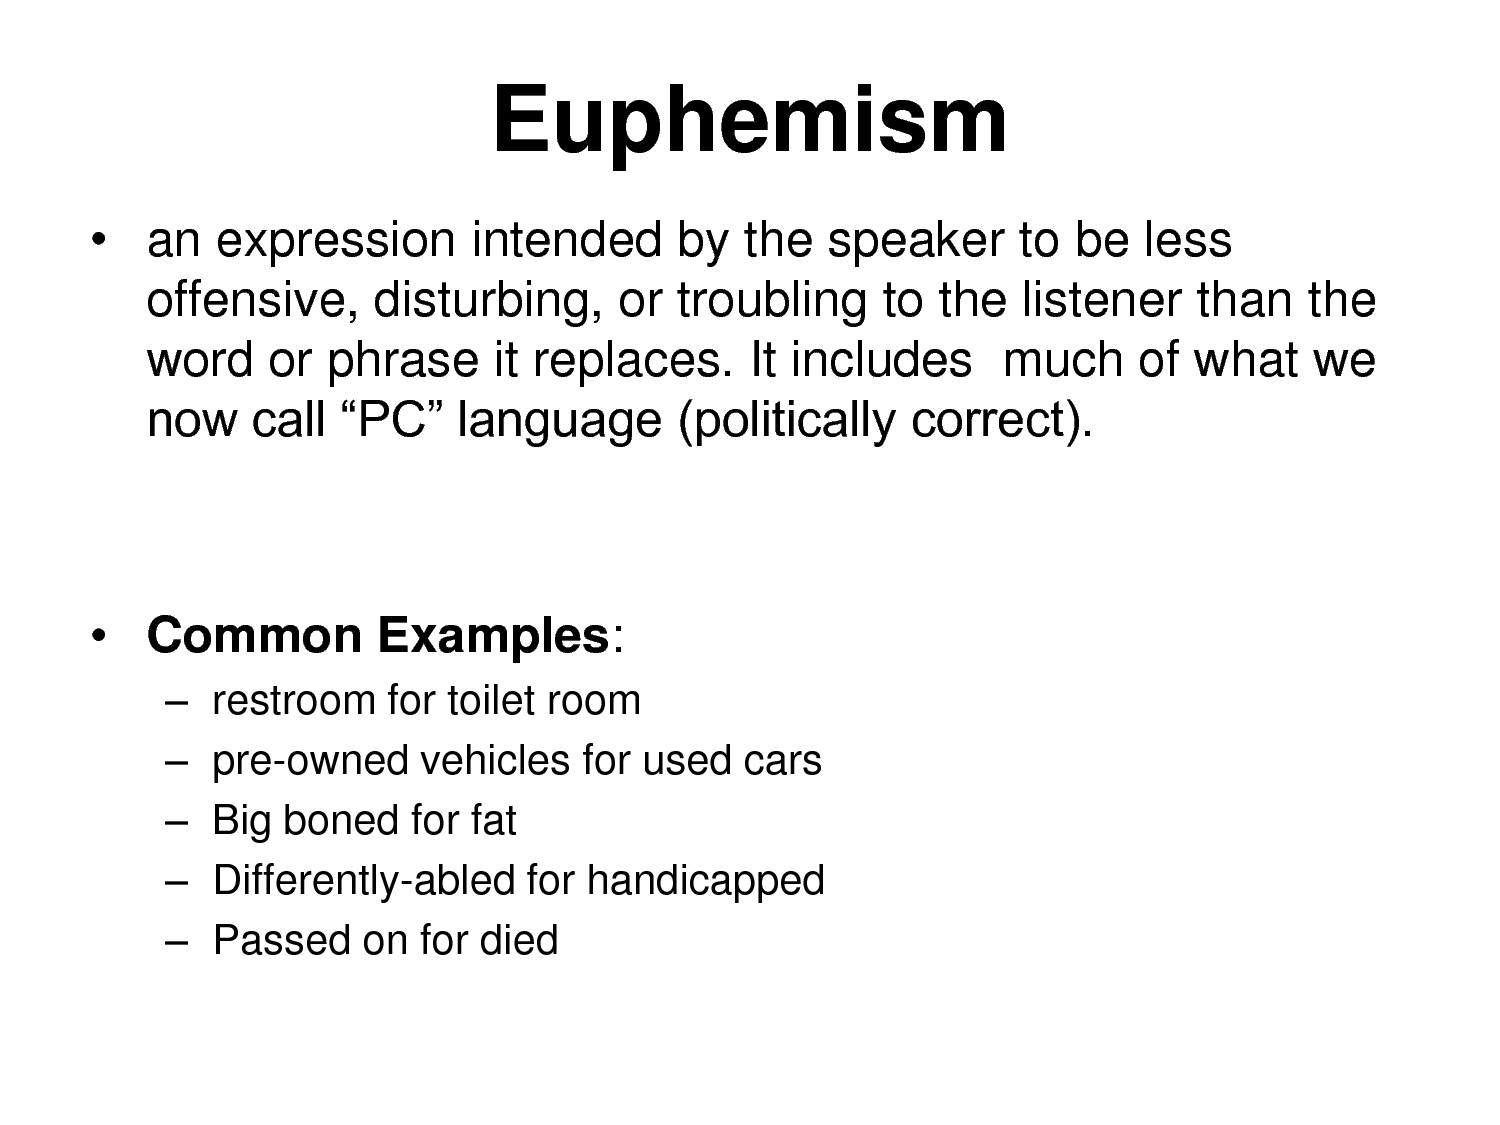 Worksheets Euphemism And Doublespeak Worksheet Answers euphemism examples google search ideas for teaching novels search